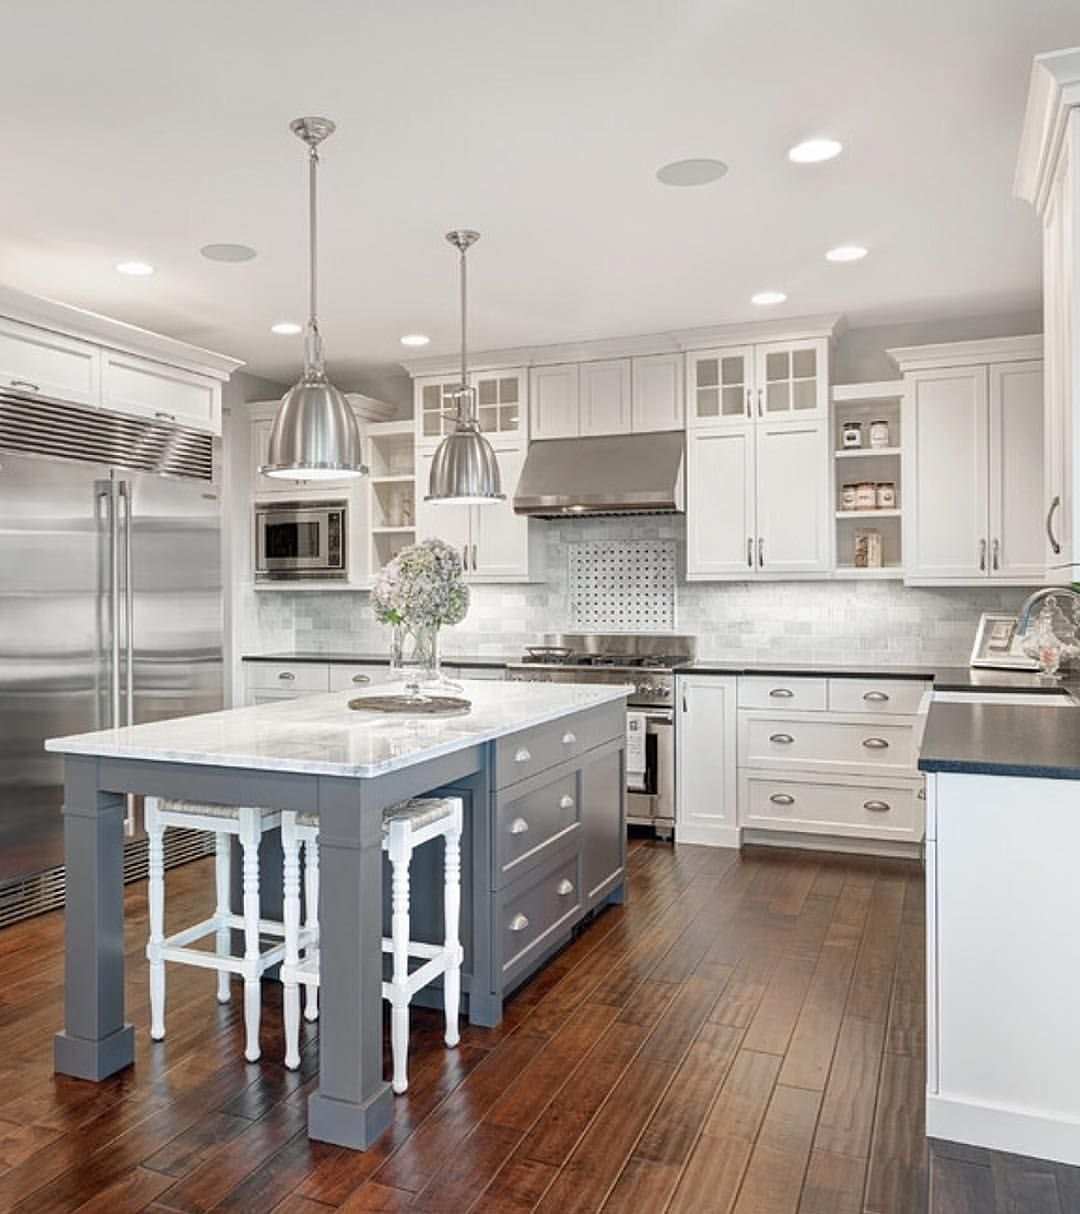 White Kitchen Cabinets With Gray Countertops: White & Marble Kitchen With Grey Island